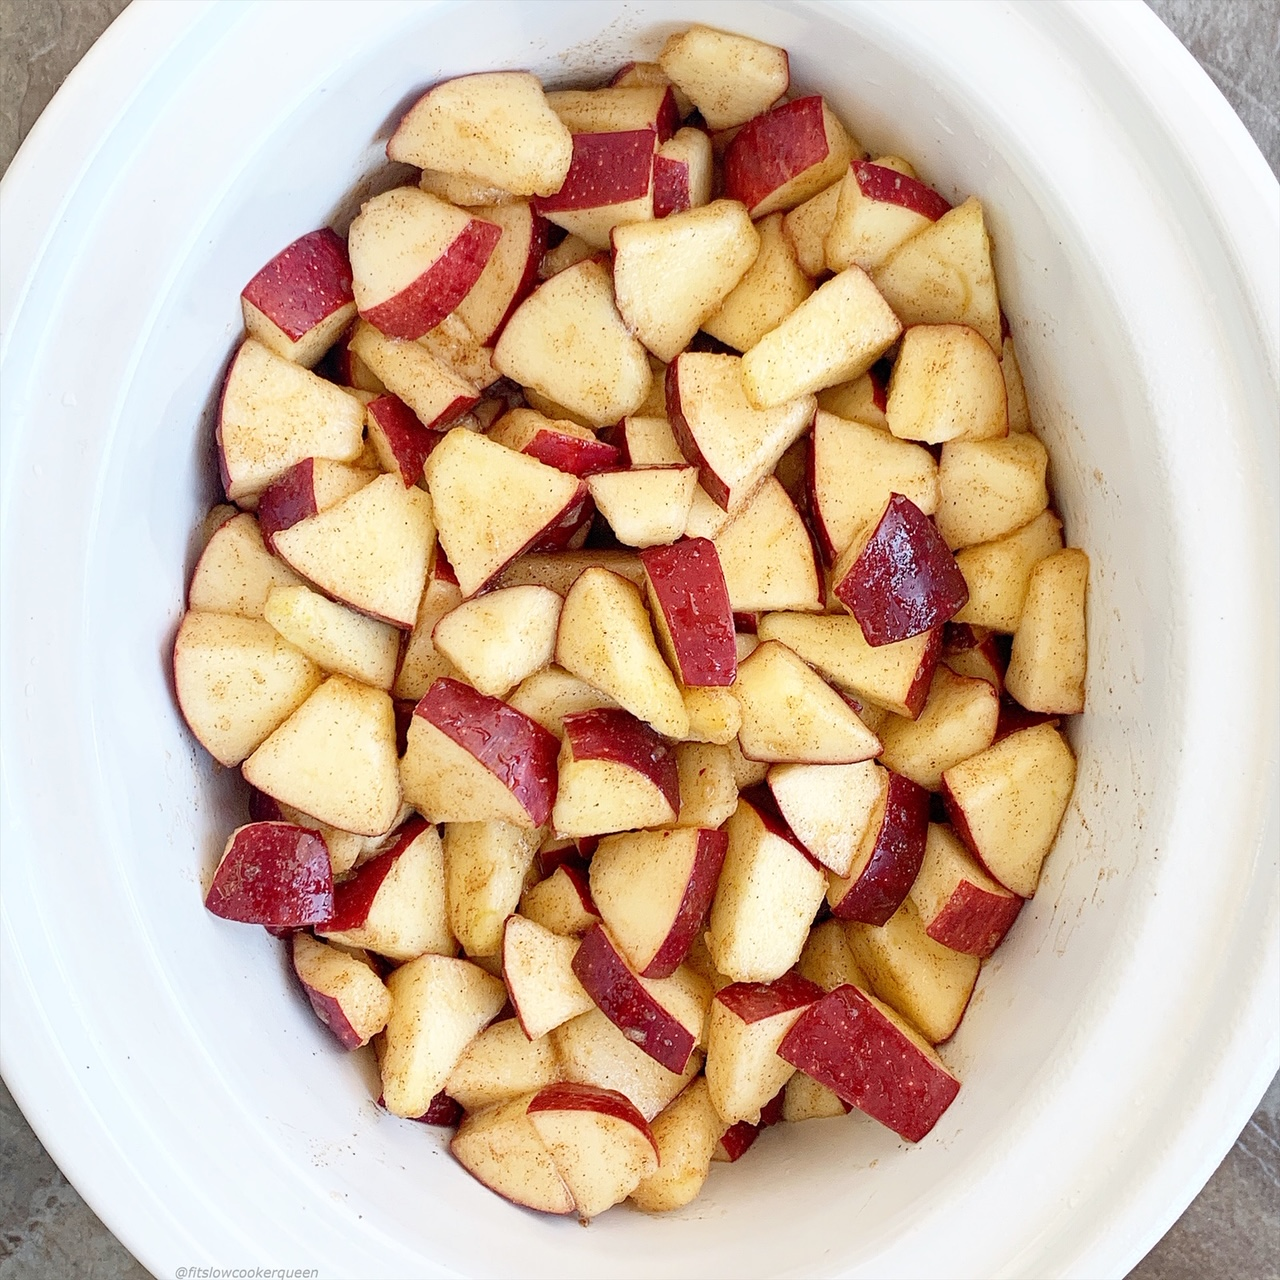 This apple & nut bake is a simple recipe that can be made in your slow cooker or Instant Pot. Jazz up this paleo and vegan apple dessert with your favoriteaccompaniments.